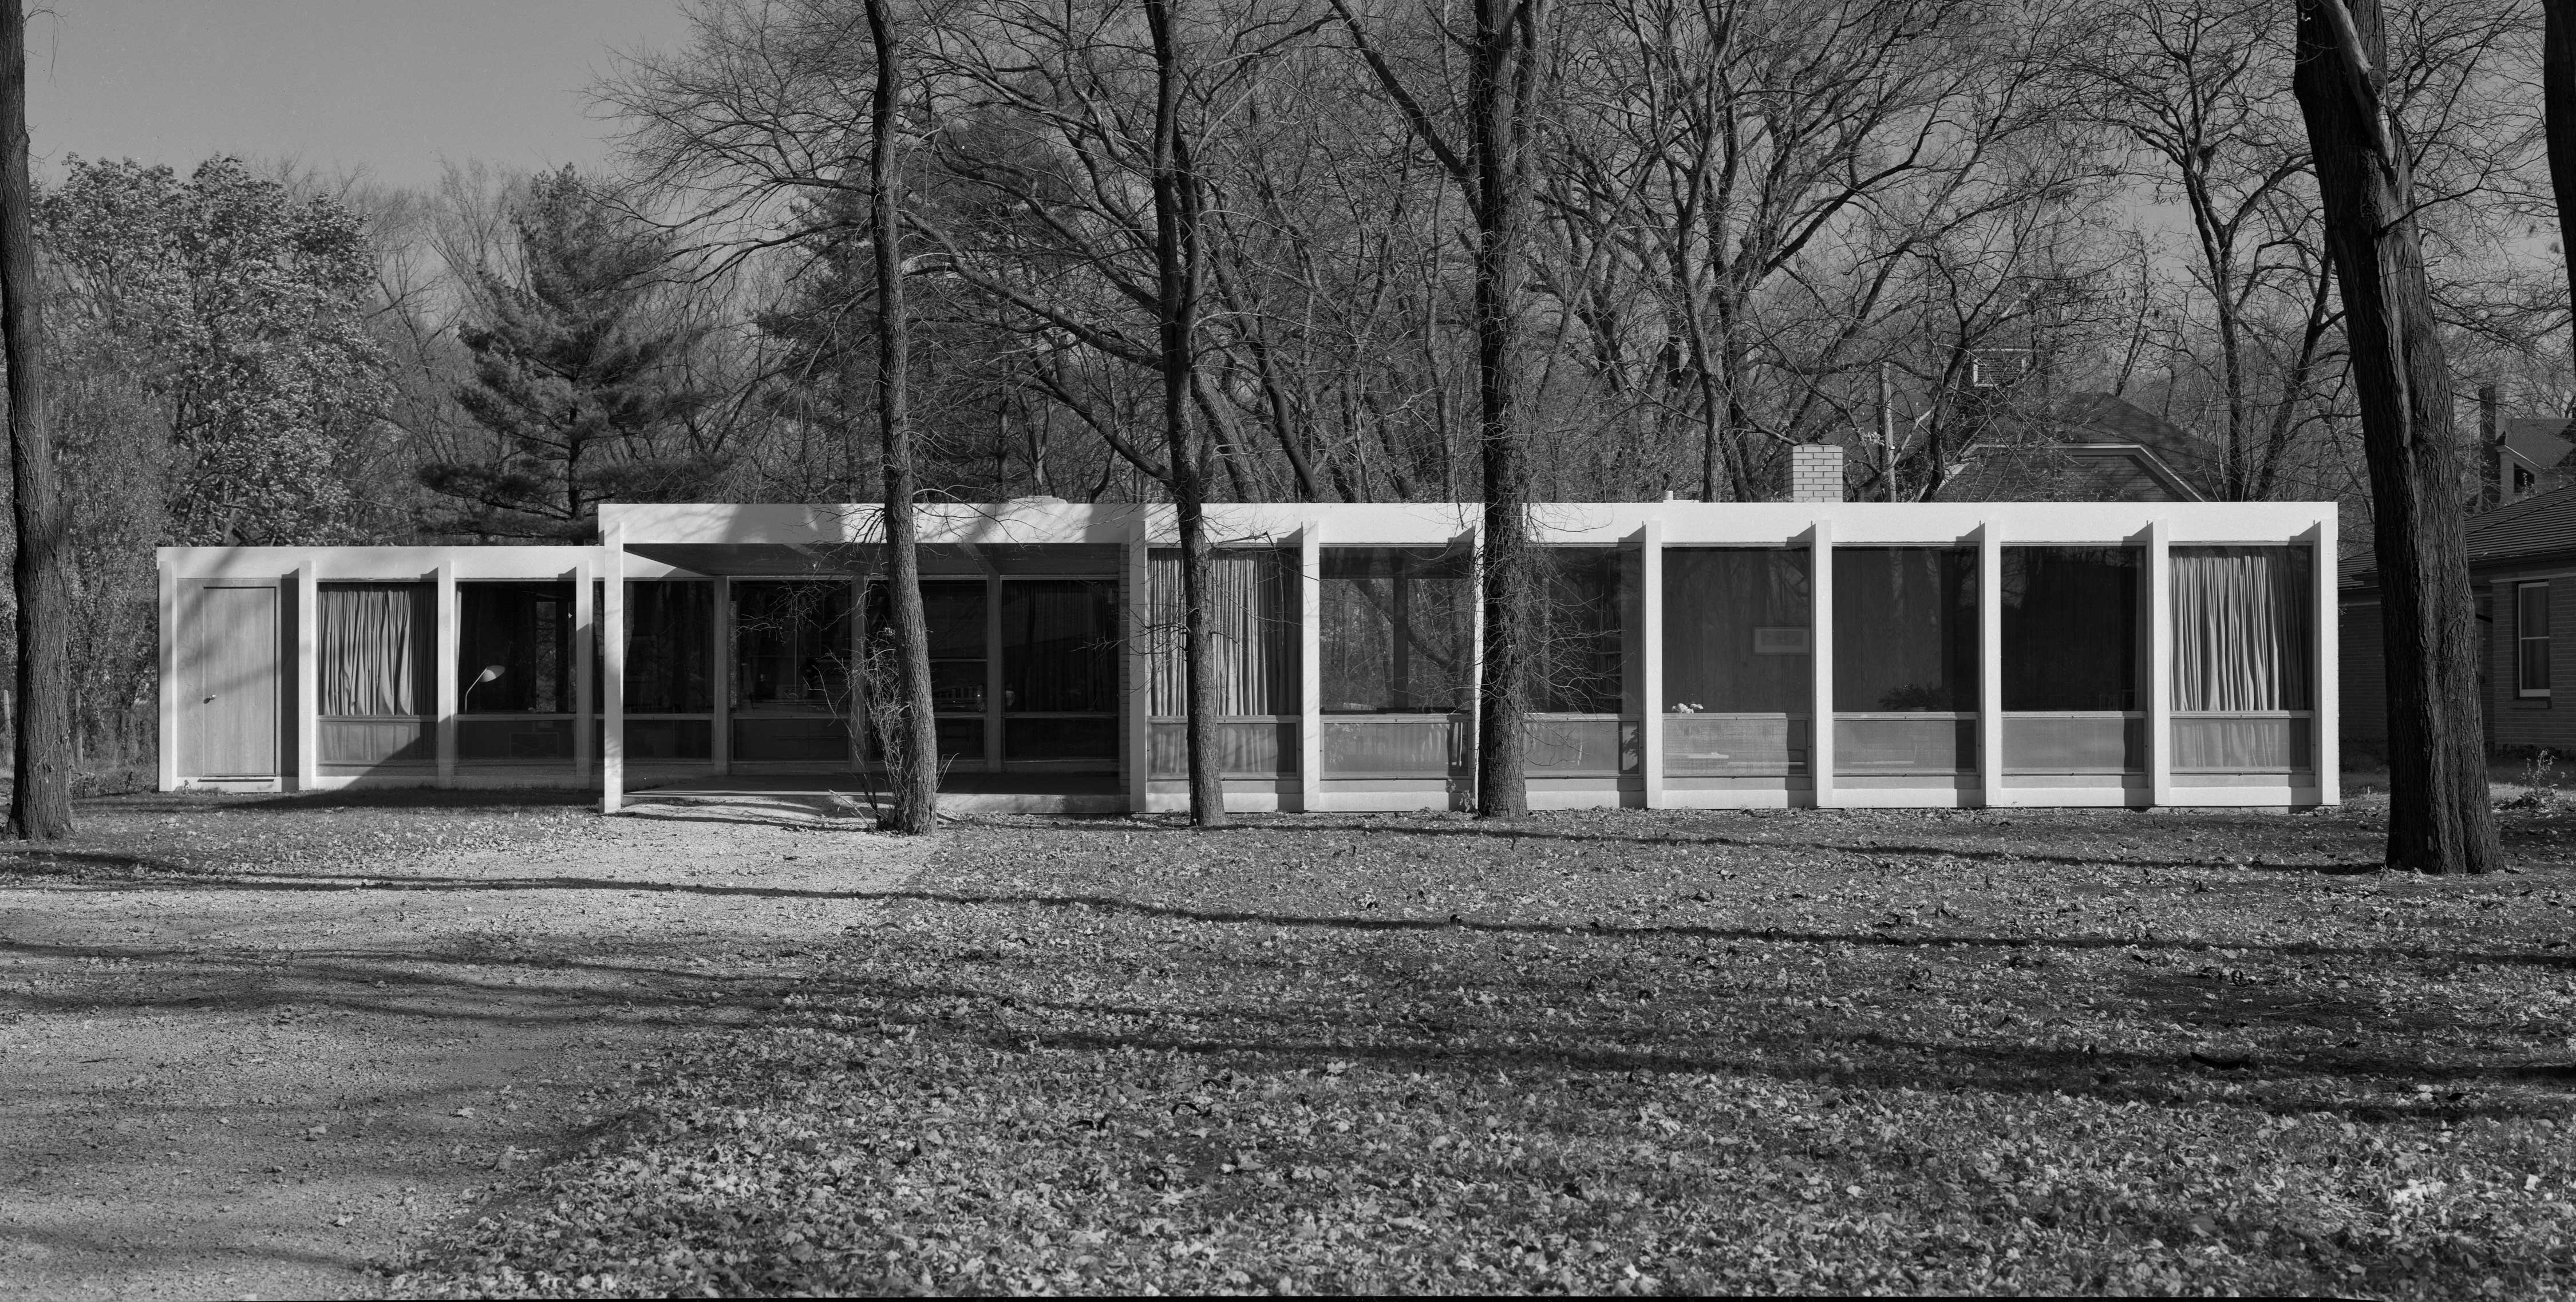 Mies van der Rohe's McCormick House on 299 Prospect Avenue